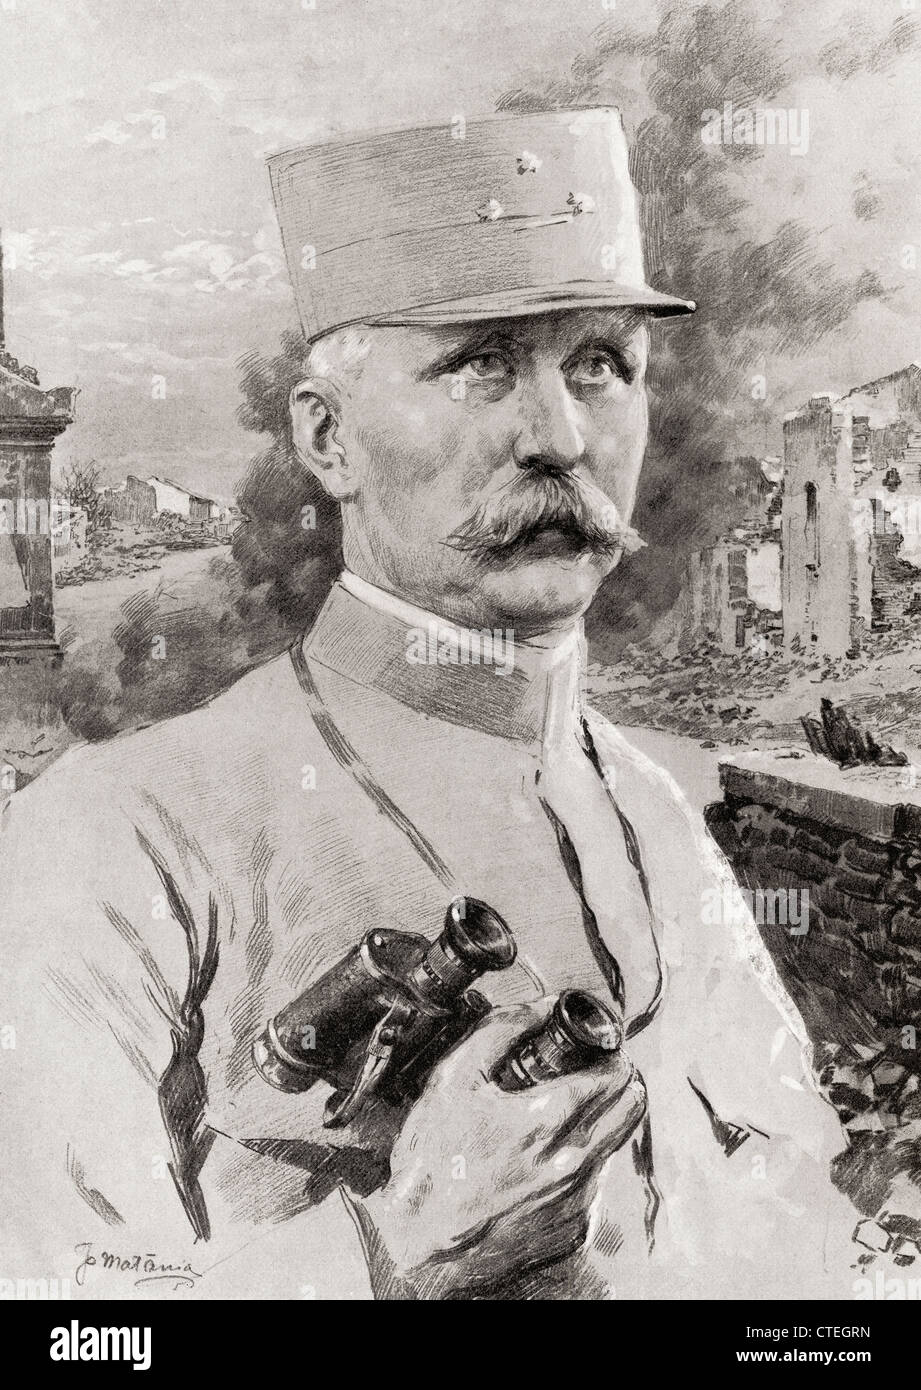 Henri Philippe Benoni Omer Joseph Pétain, 1856 – 1951, aka Philippe Pétain or Marshal Pétain. - Stock Image